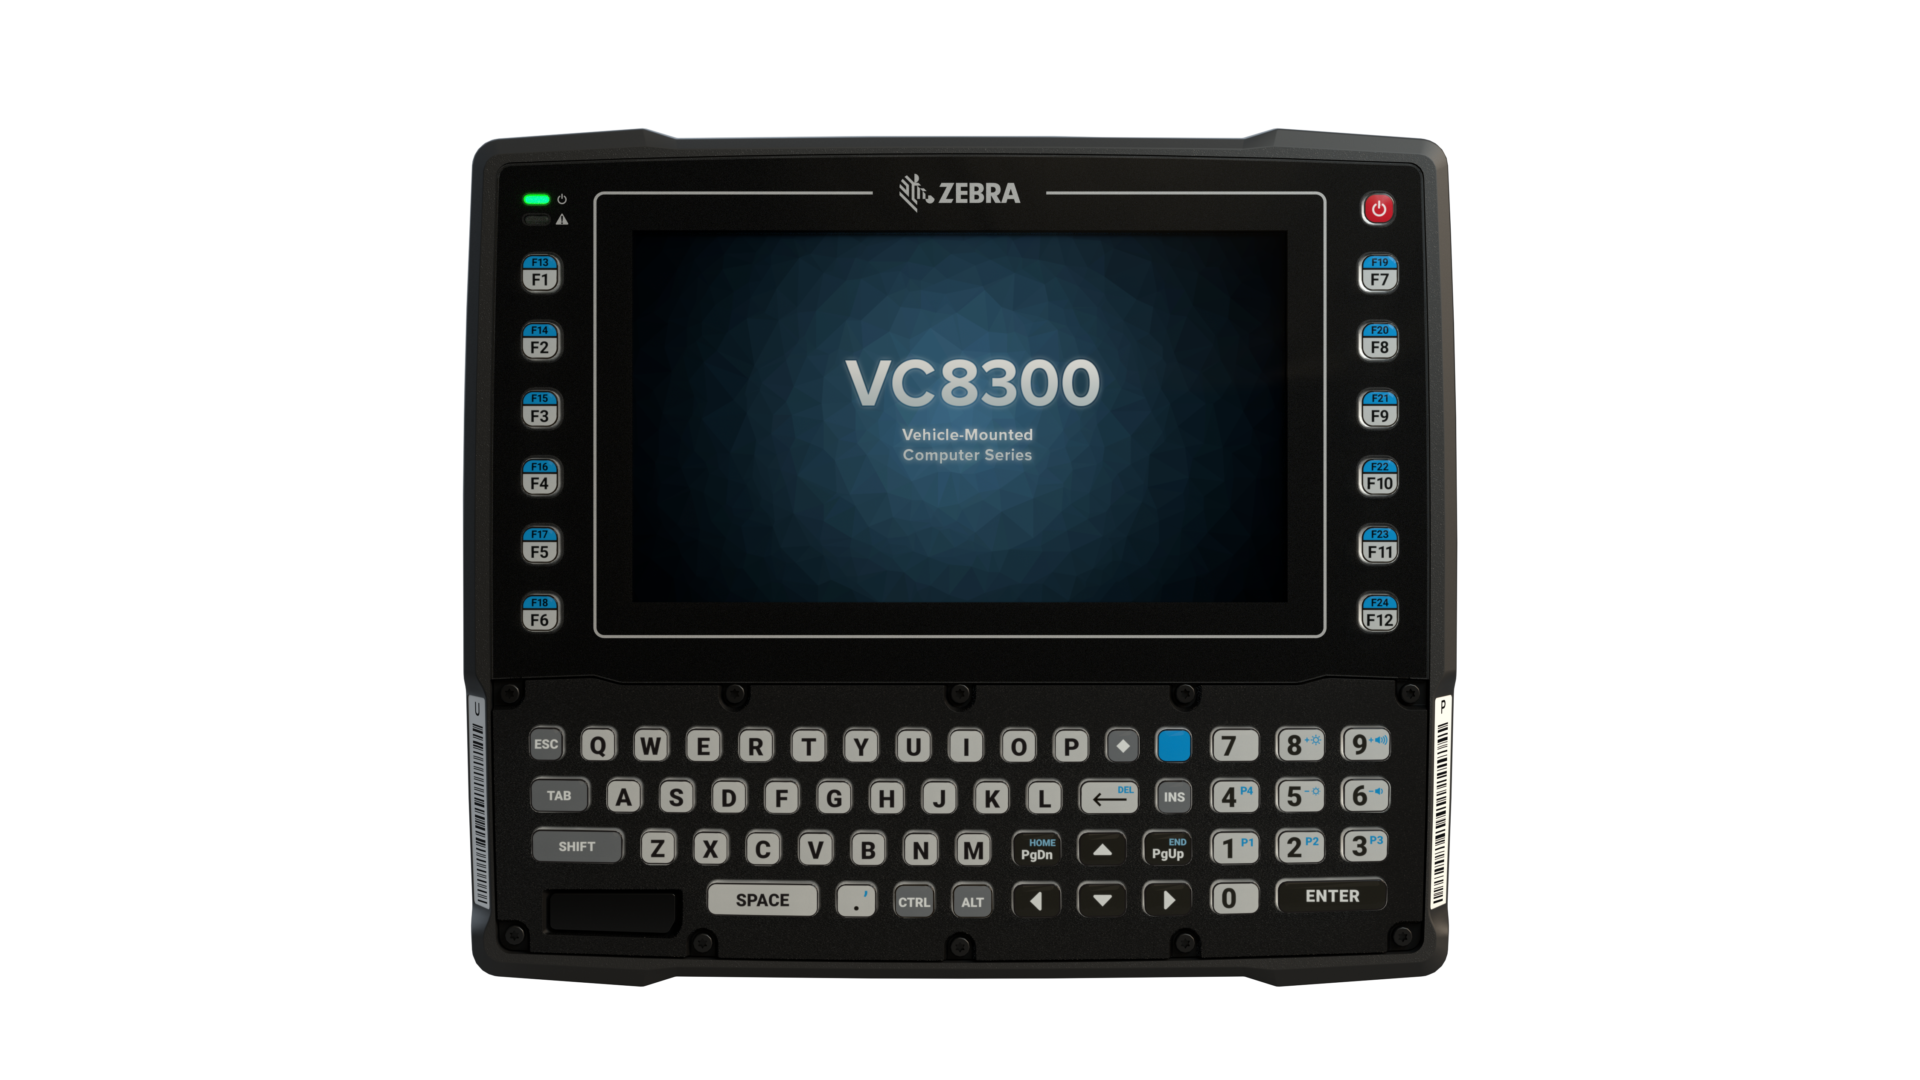 VC8300 Vehicle Mount Computer